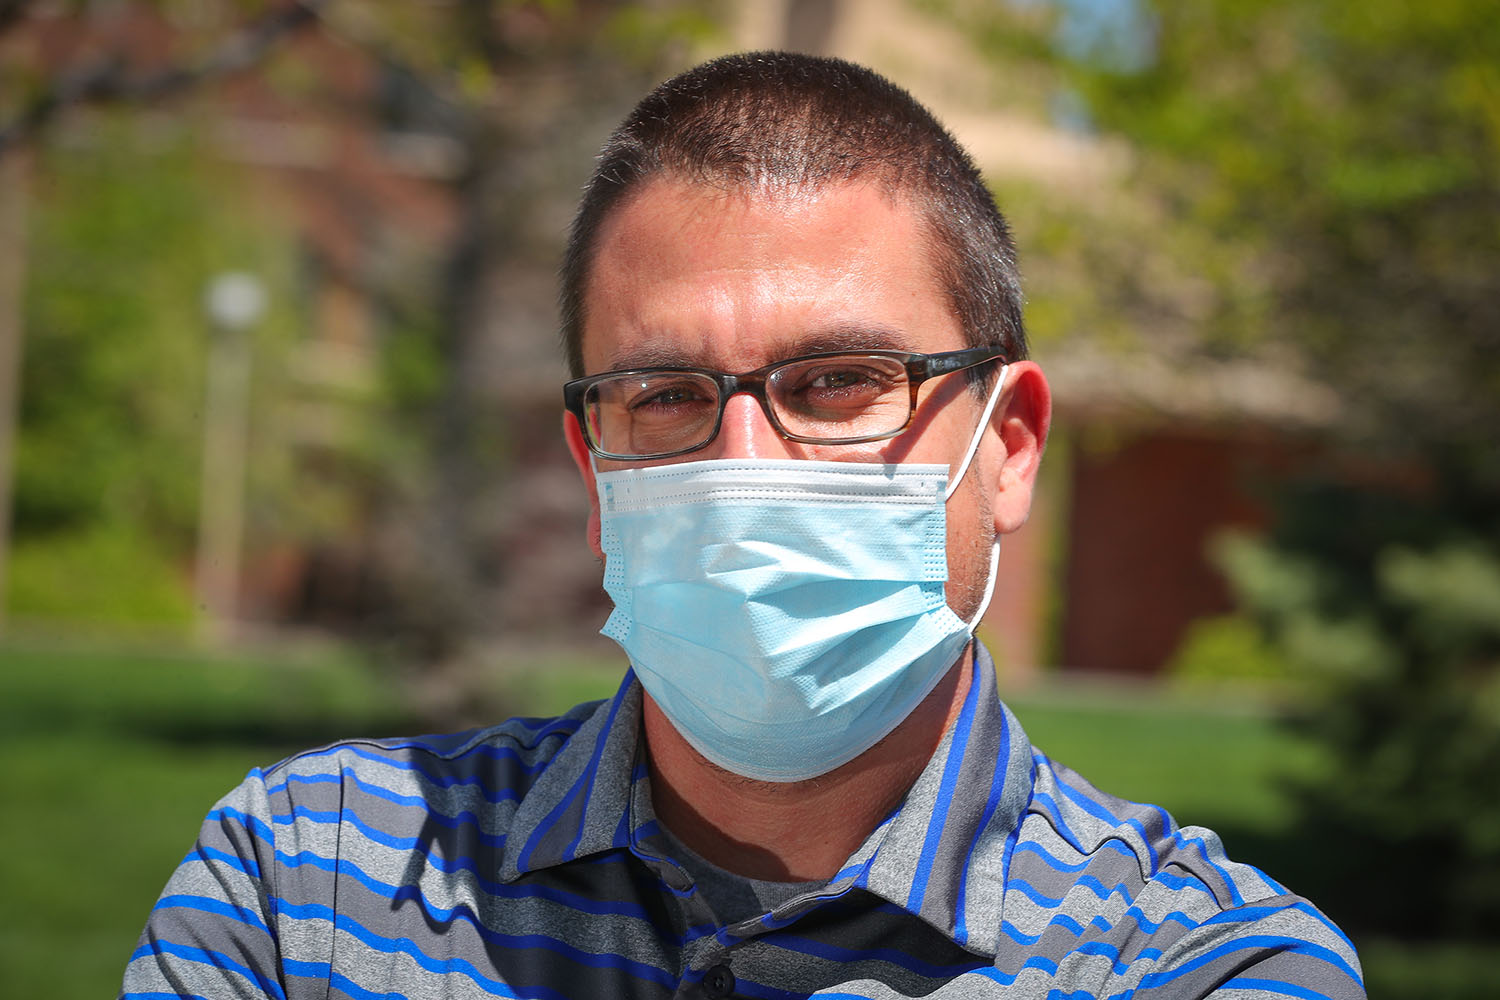 UNK associate history professor David Vail uses lessons from the past to put the current coronavirus pandemic into perspective. (Photo by Corbey R. Dorsey, UNK Communications)